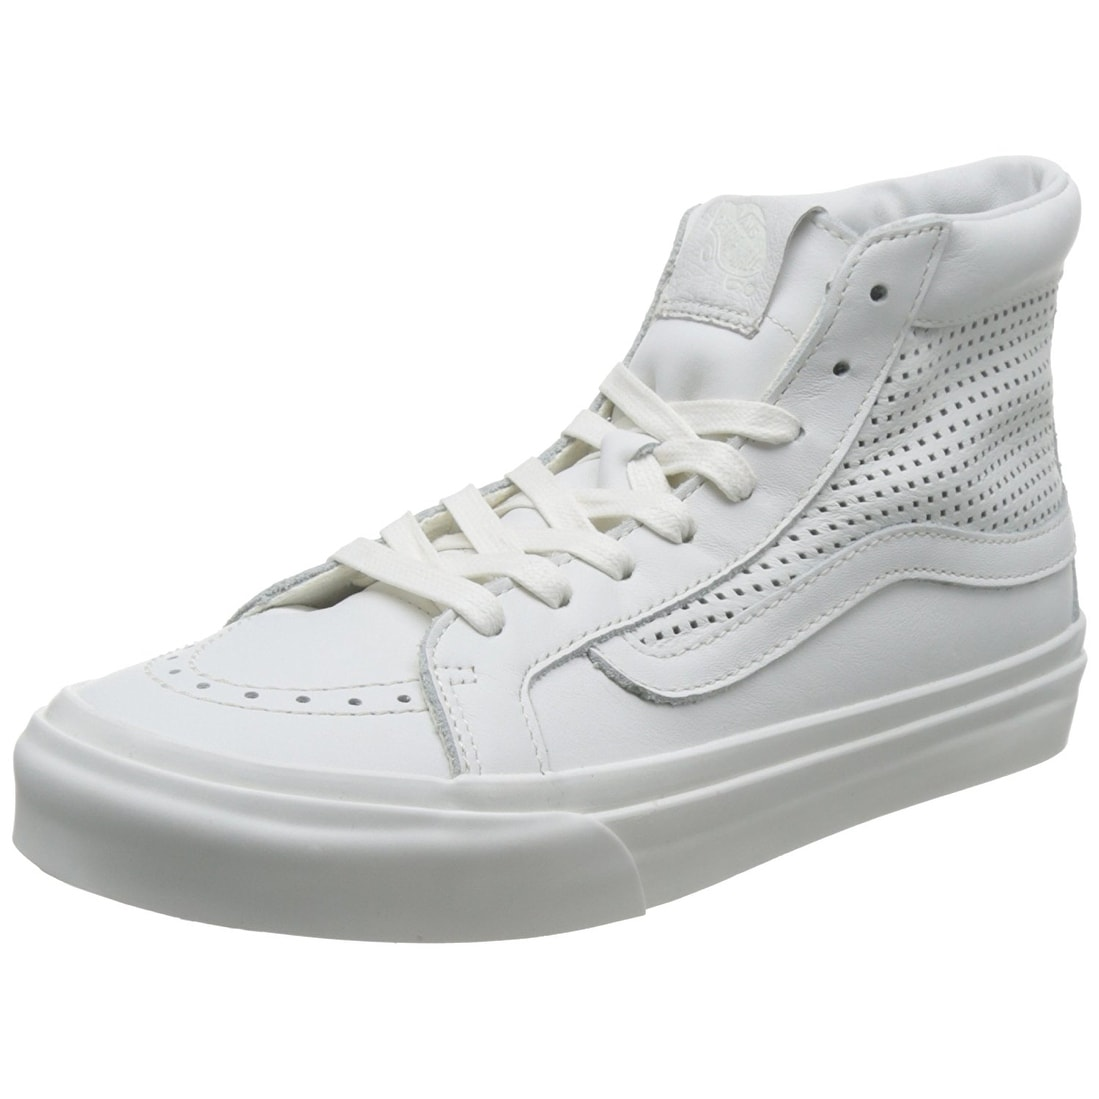 c5010b7a0e Shop Vans Womens SK8-Hi Slim Cutout DX Sneaker - Free Shipping On Orders  Over  45 - Overstock - 18536291